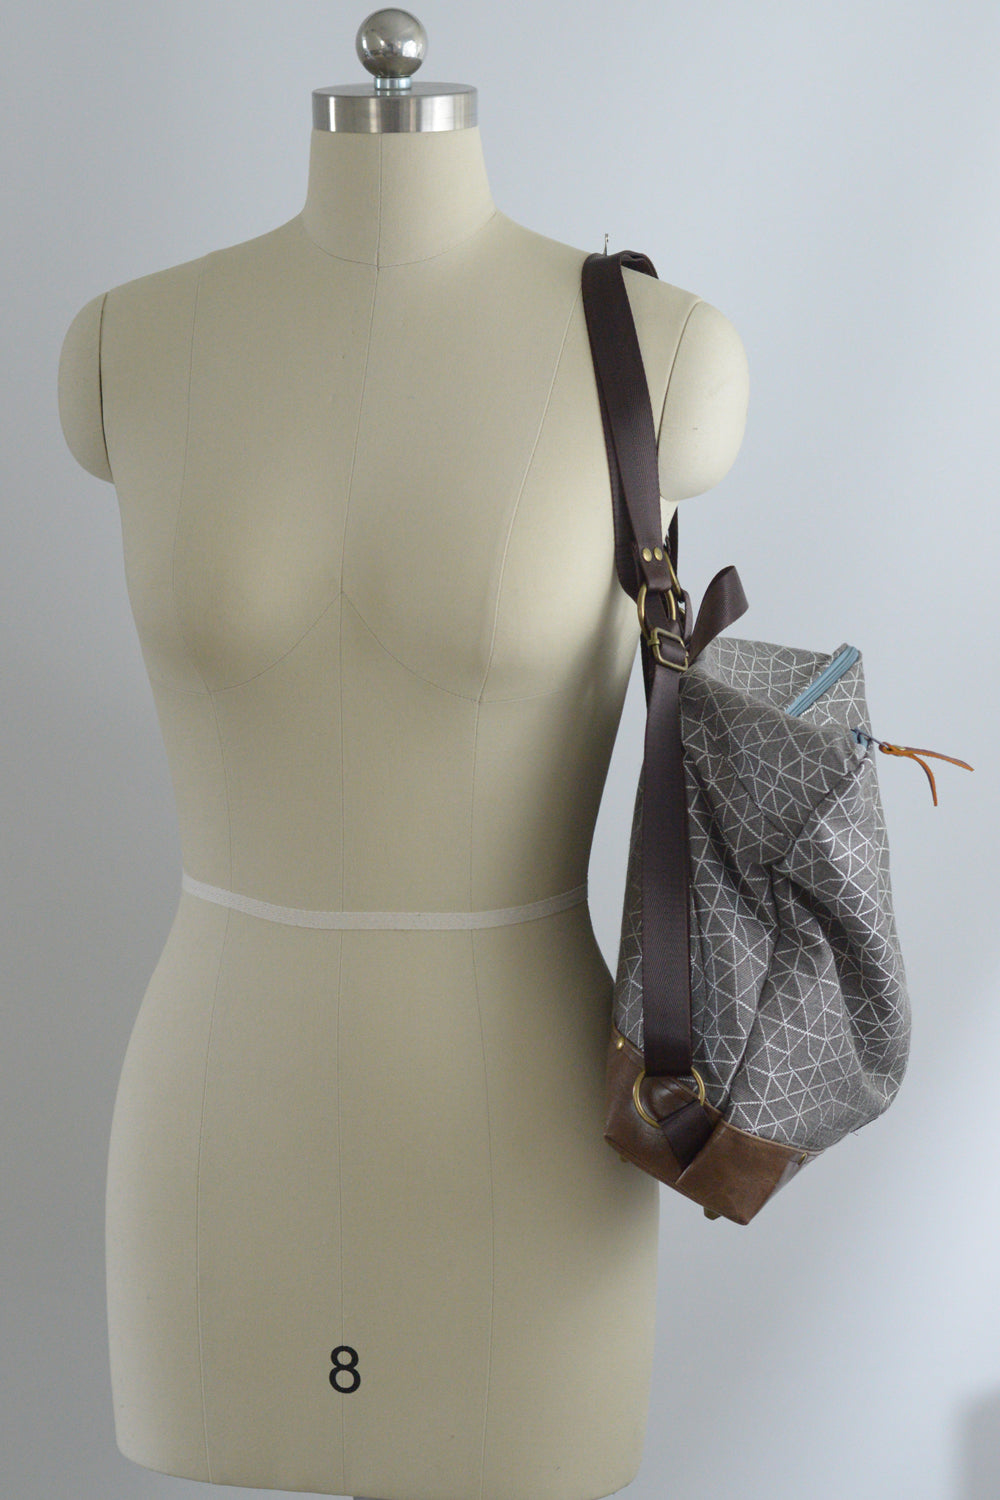 Custom Handbag Set + Clutch - Backpack/Handbag | Made to Order